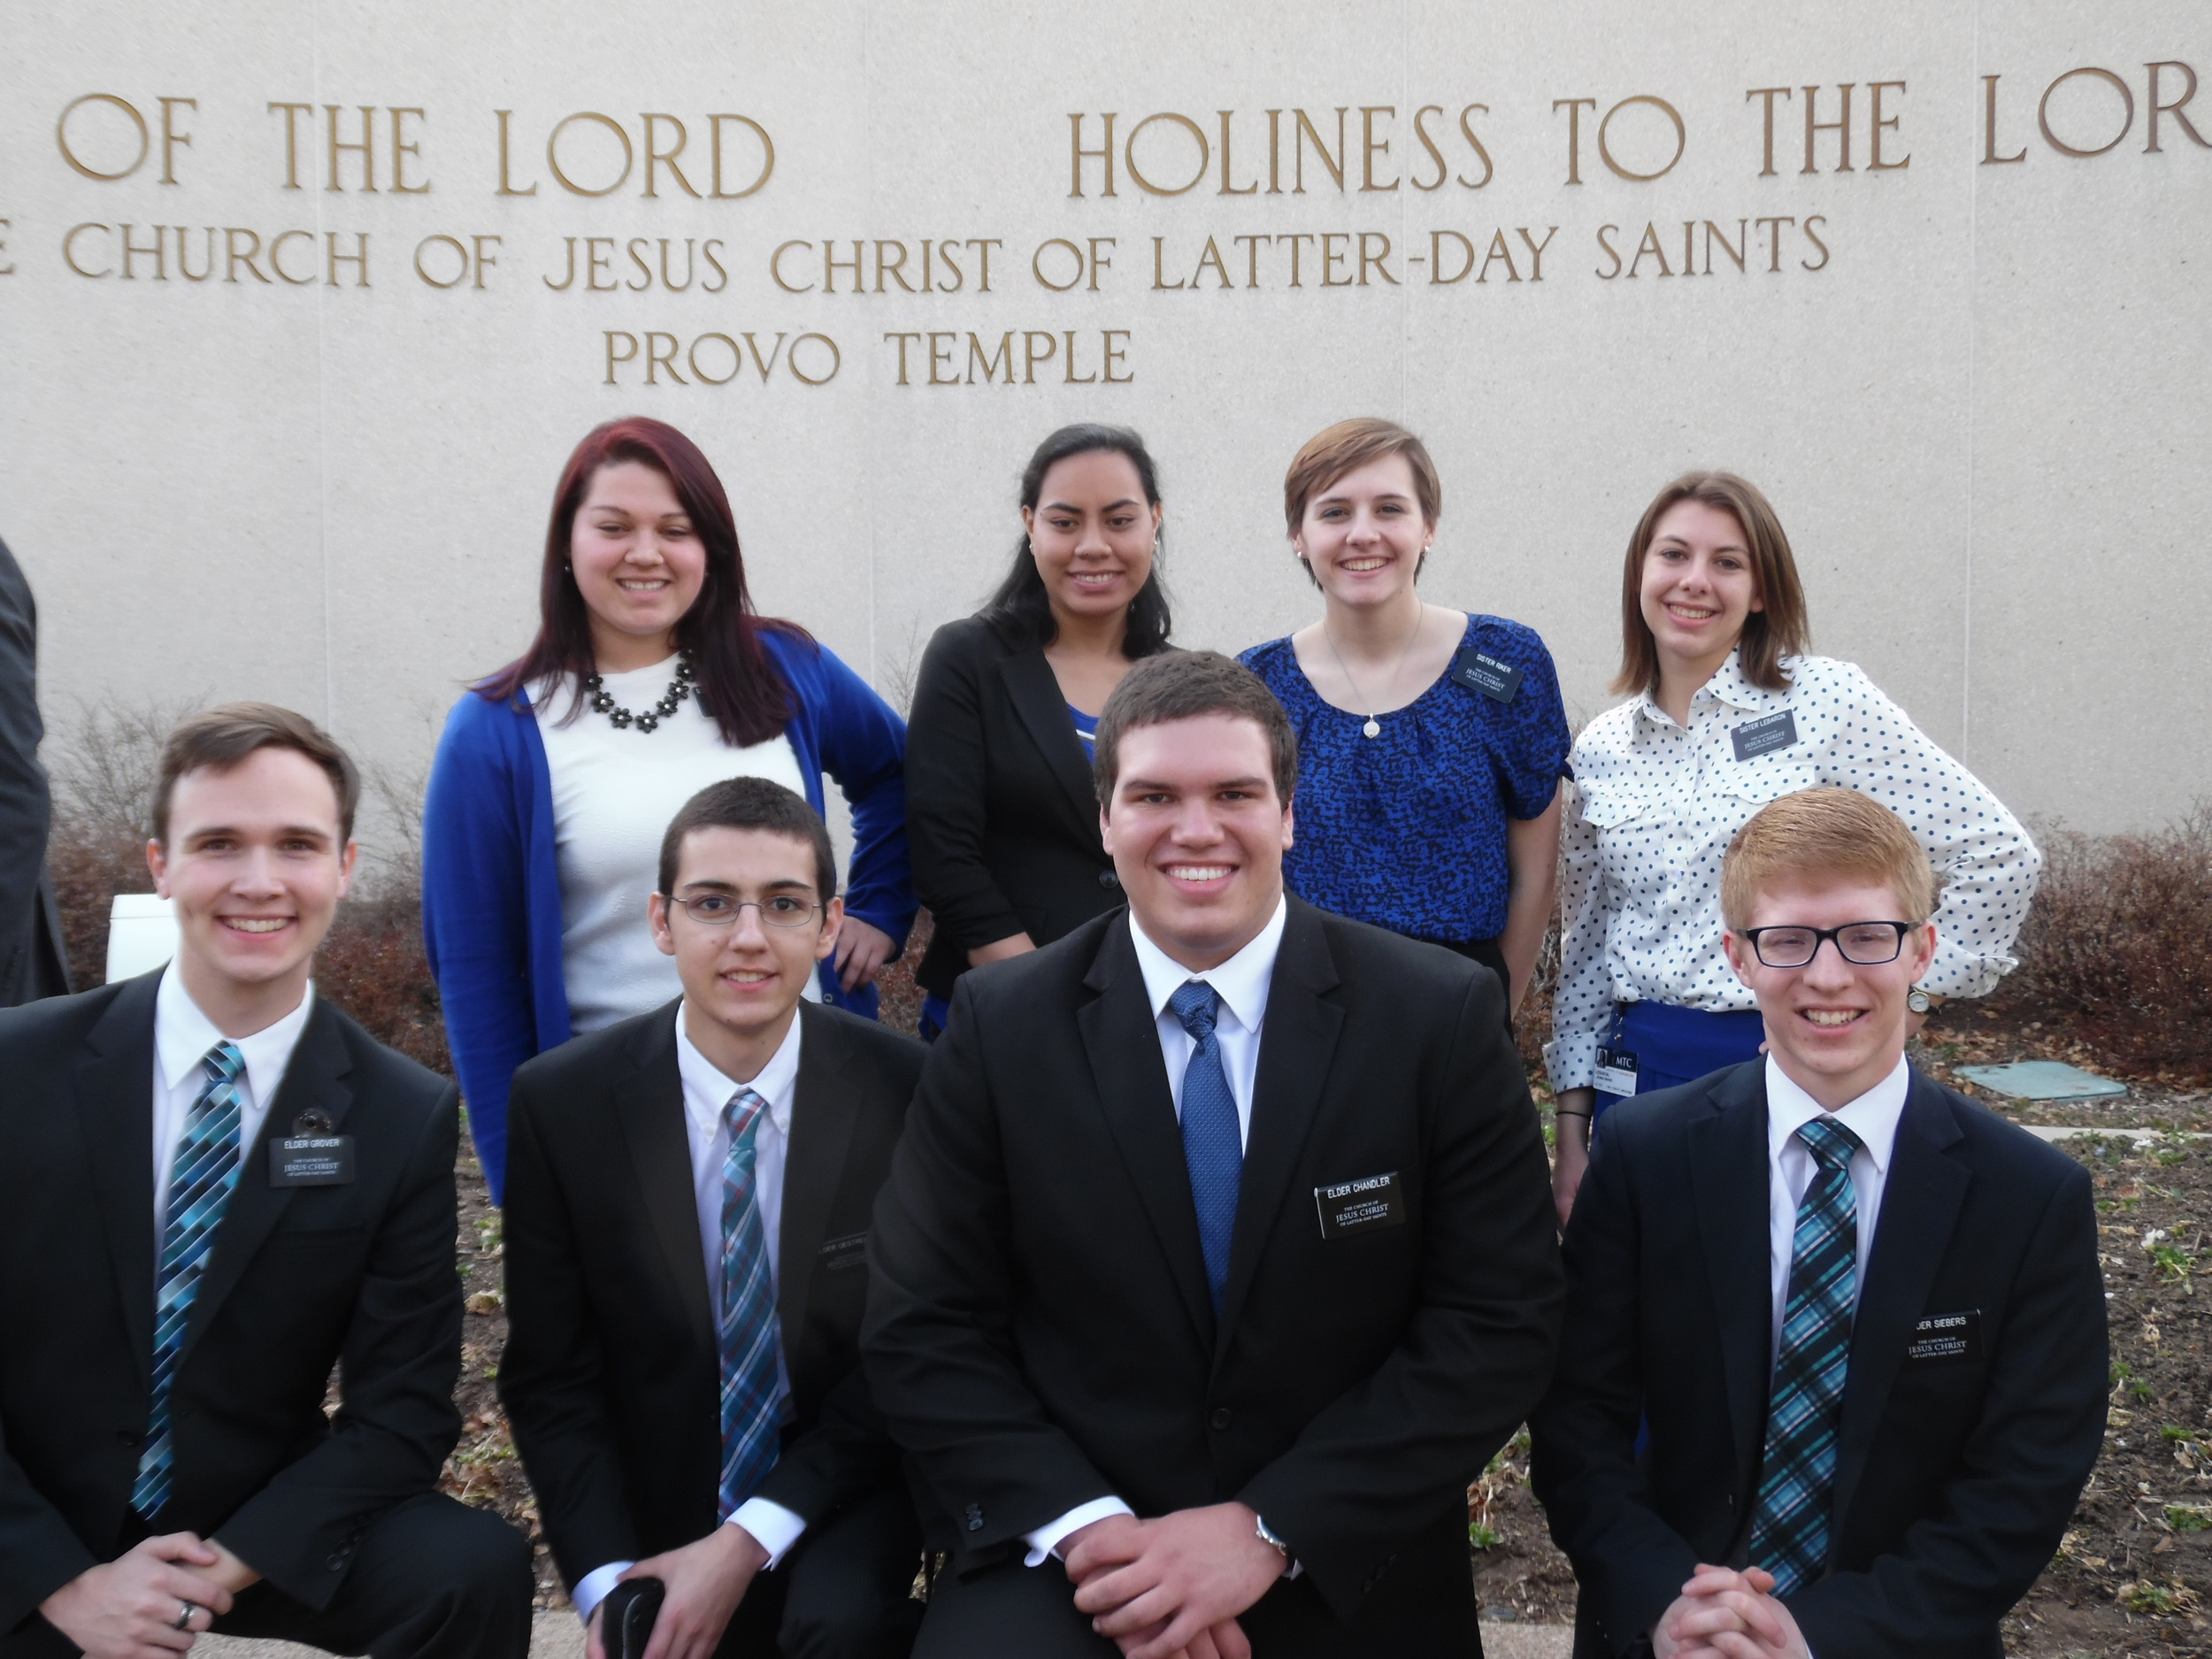 I believe the elder second from the right is the one from Portland--Elder Chandler